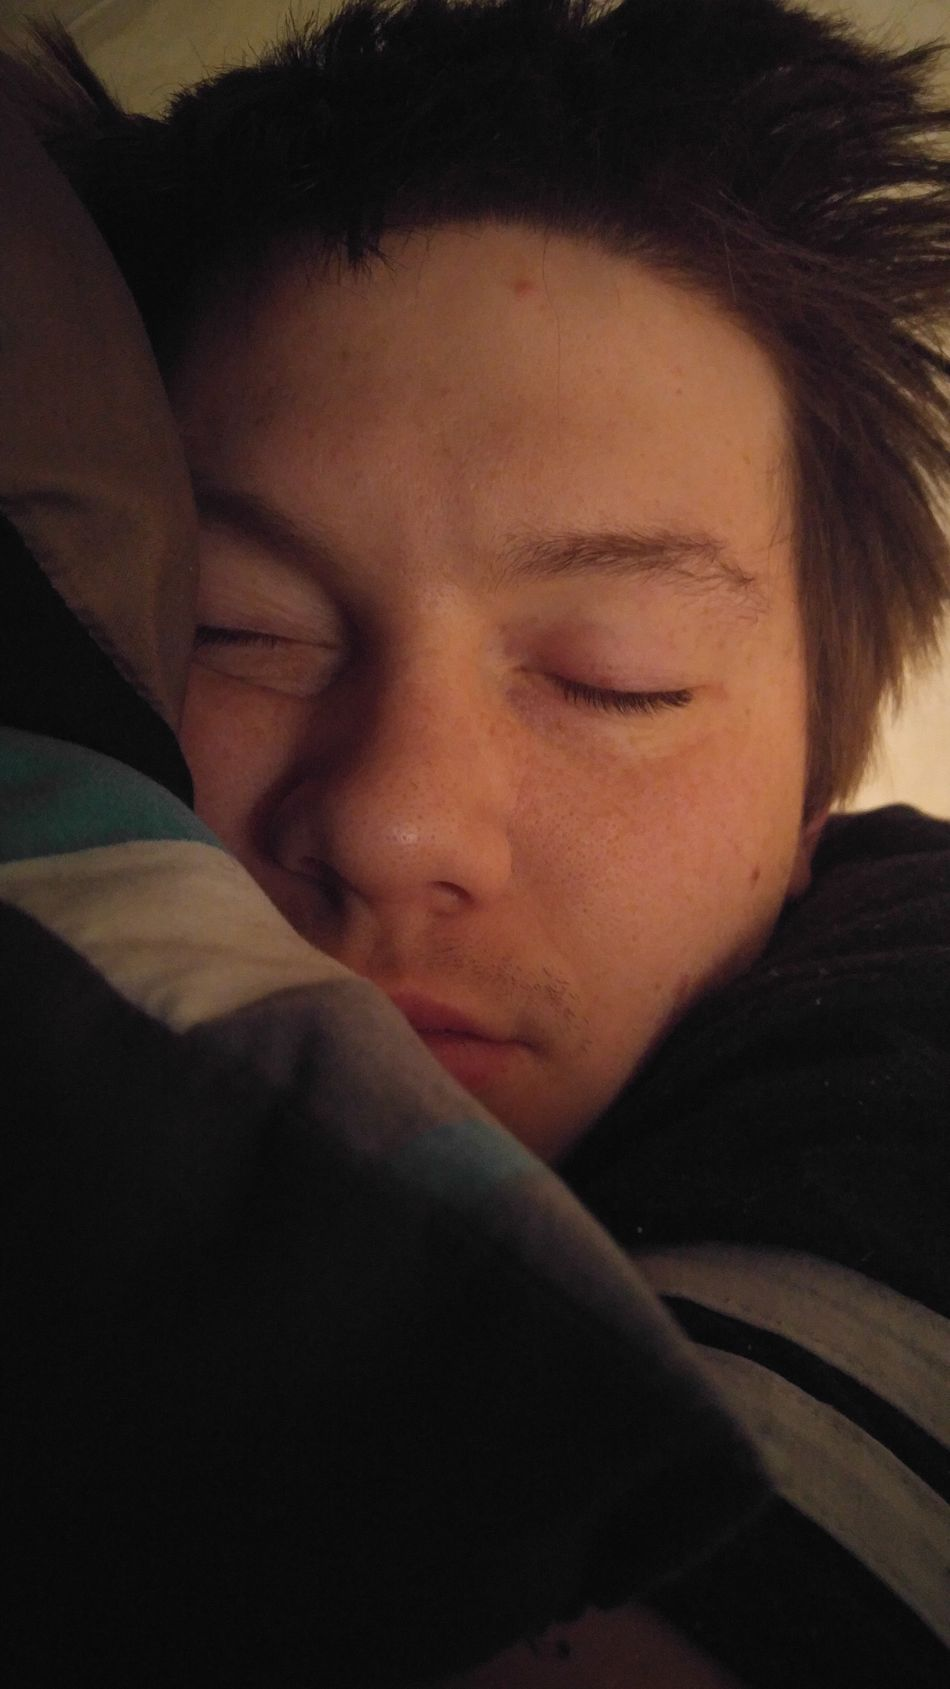 My handsome babe sleeping in this morning 😍 i love him so much & im so thankful for everything he does for me. 💚 Boyfriend New Popular Photos Taking Photos Today's Hot Look Perfect Love Hello World Happy Check This Out Likes Follow Handsome Sleeping